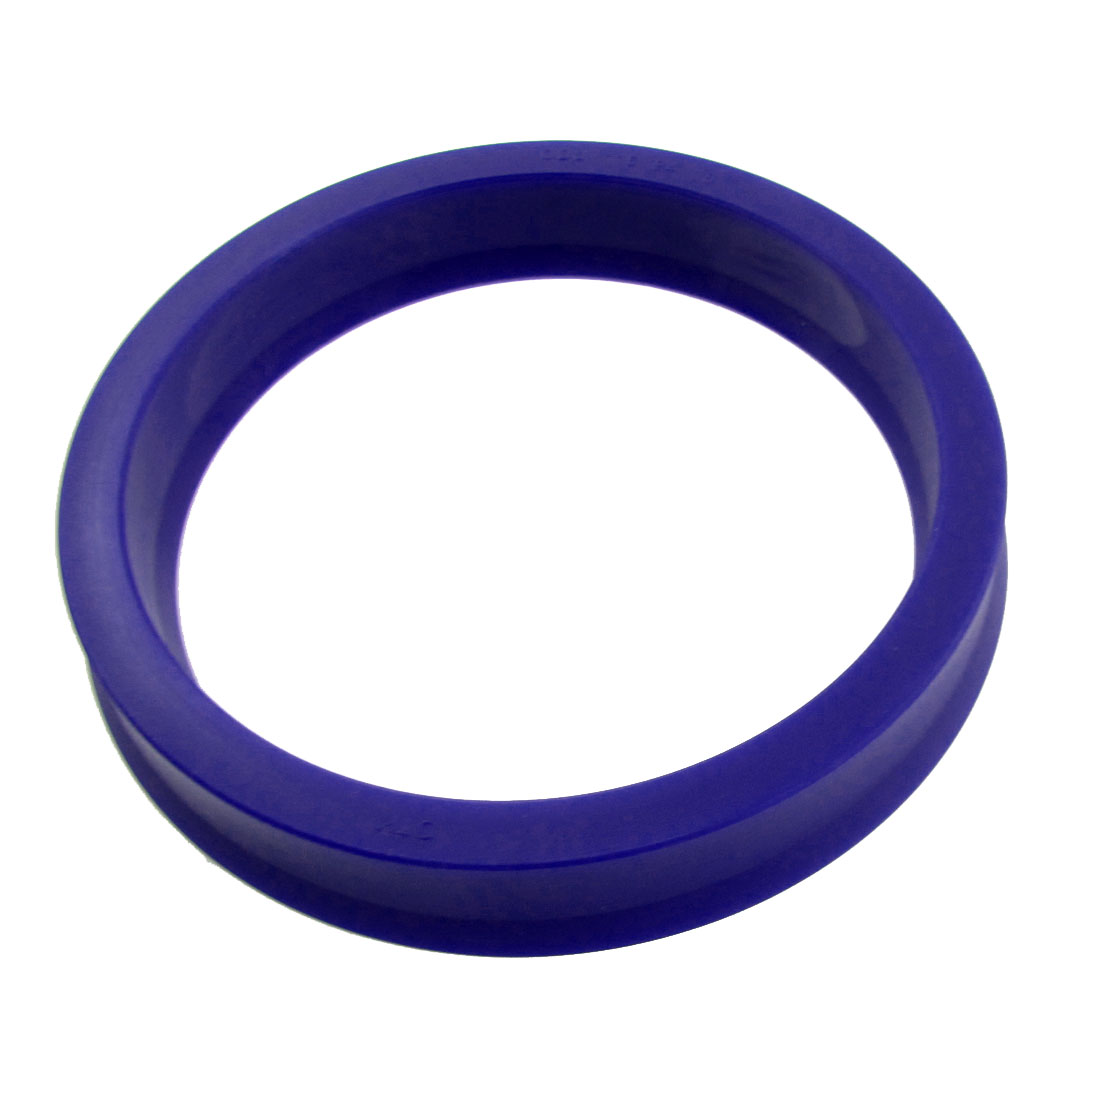 110mm x 98mm x 14mm Motorcycle Crankshaft Blue PU Hydraulic Oil Seal